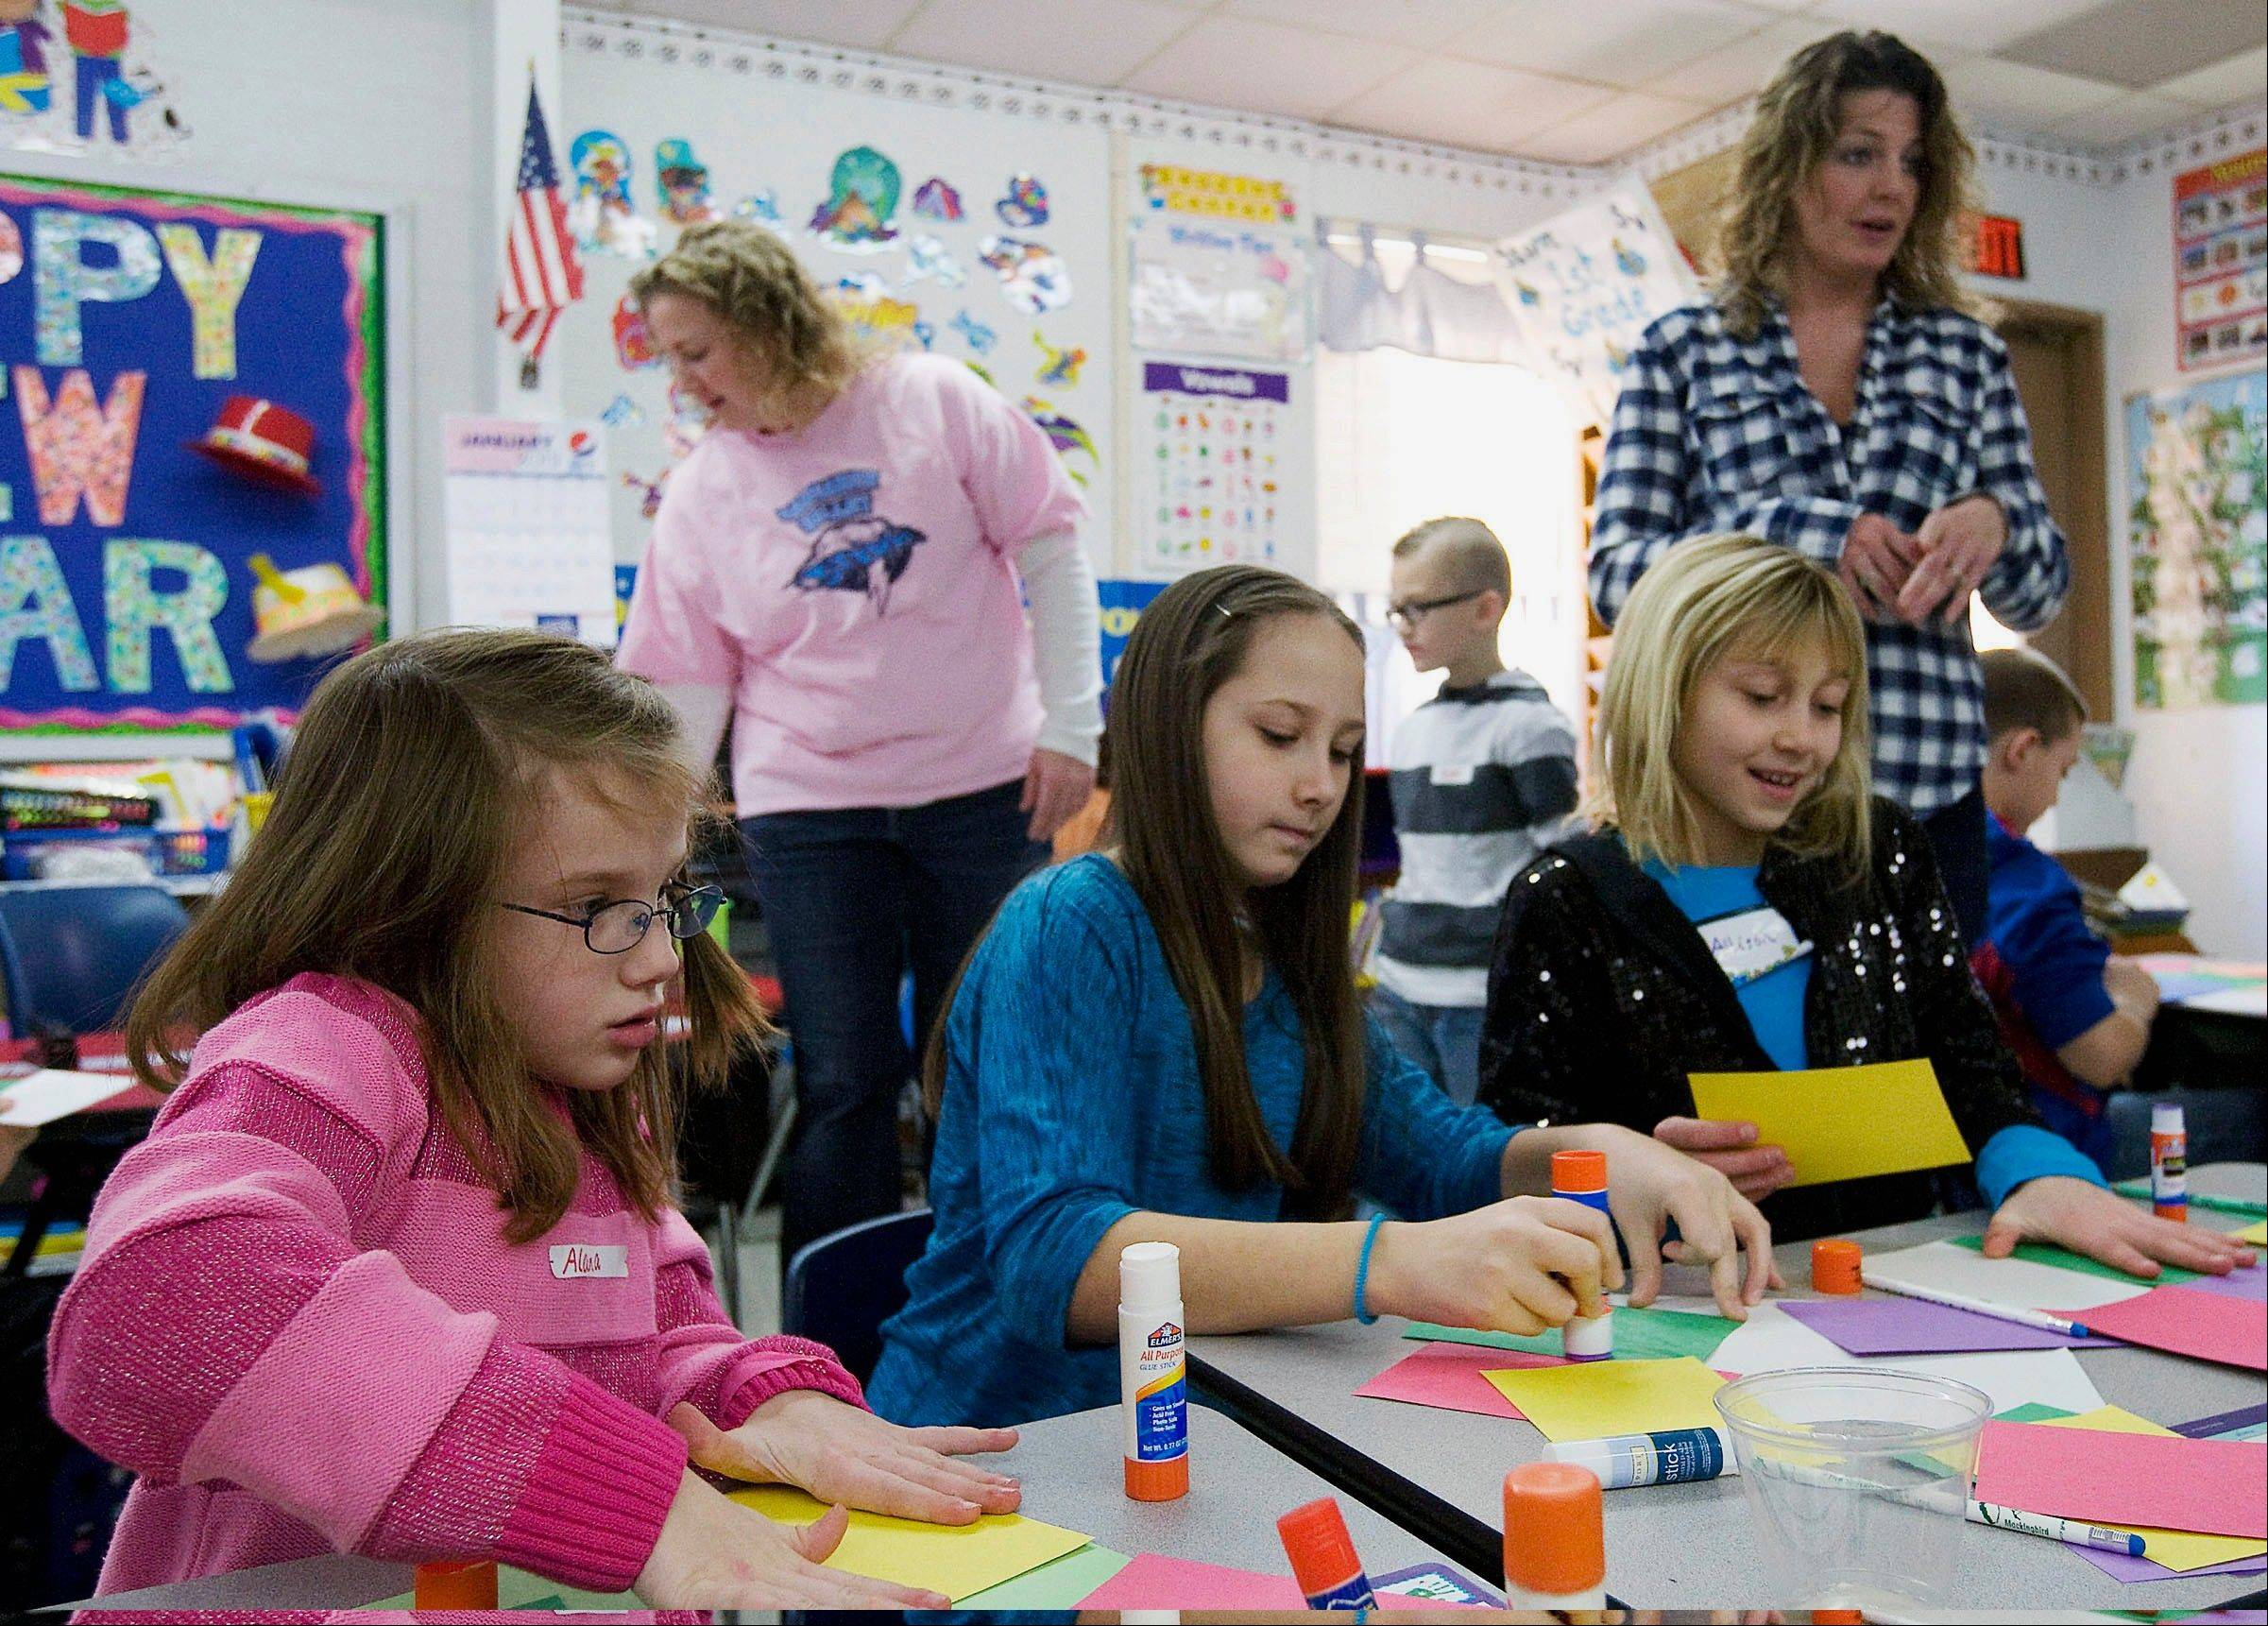 From left, first-grader Alana Schmidt, along with fifth-graders Lexi Lowe and Allison Campbell work with first-grade teacher Teri Runions, far right, to create blocks of pop art during Team Days at Illiopolis Elementary School in Illiopolis.